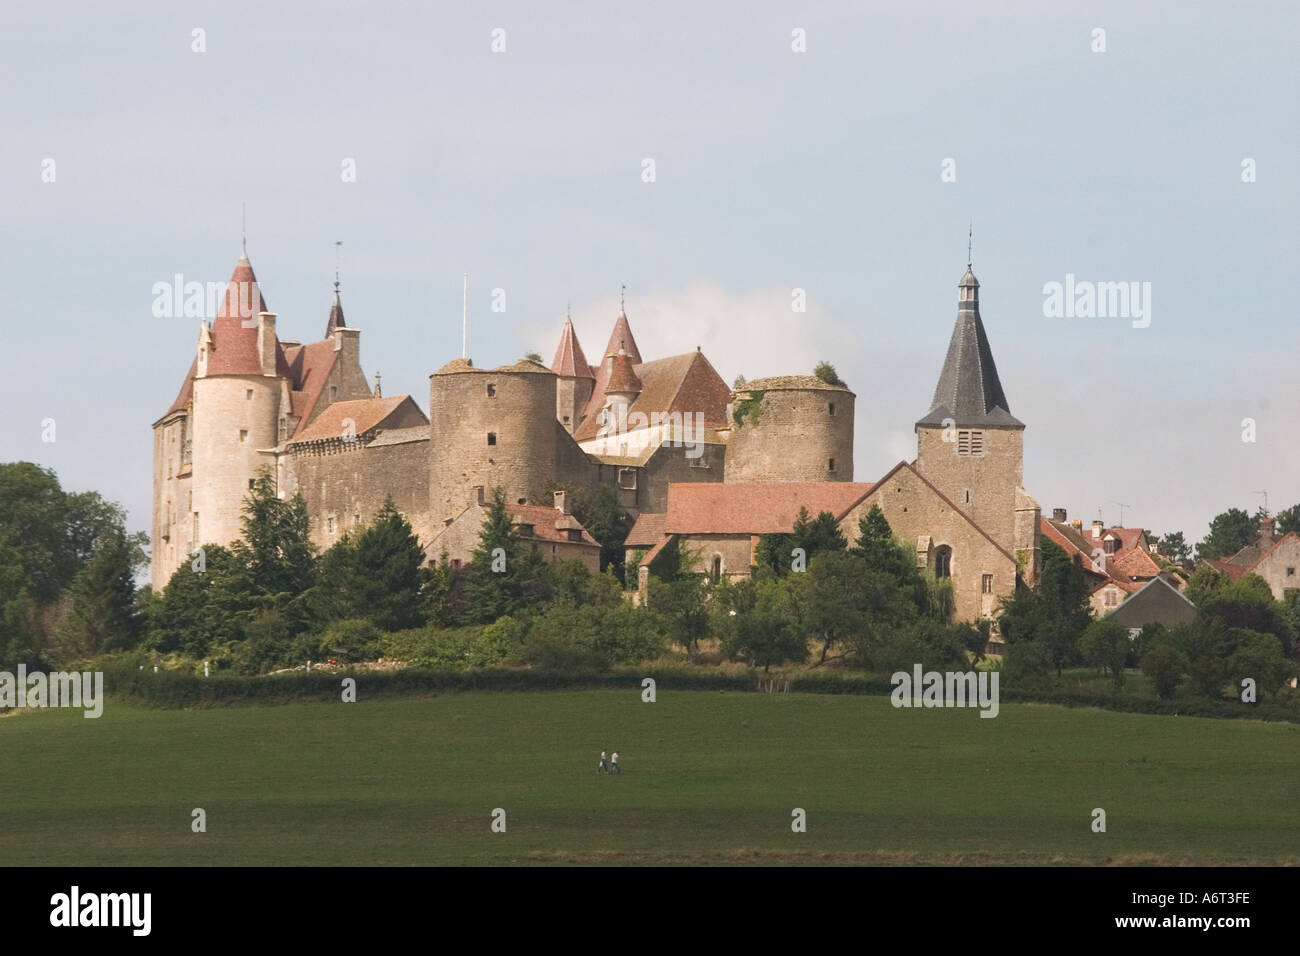 Bourgogne Chateau The Chateau Of Chateauneuf En Auxois Bourgogne France Stock Photo